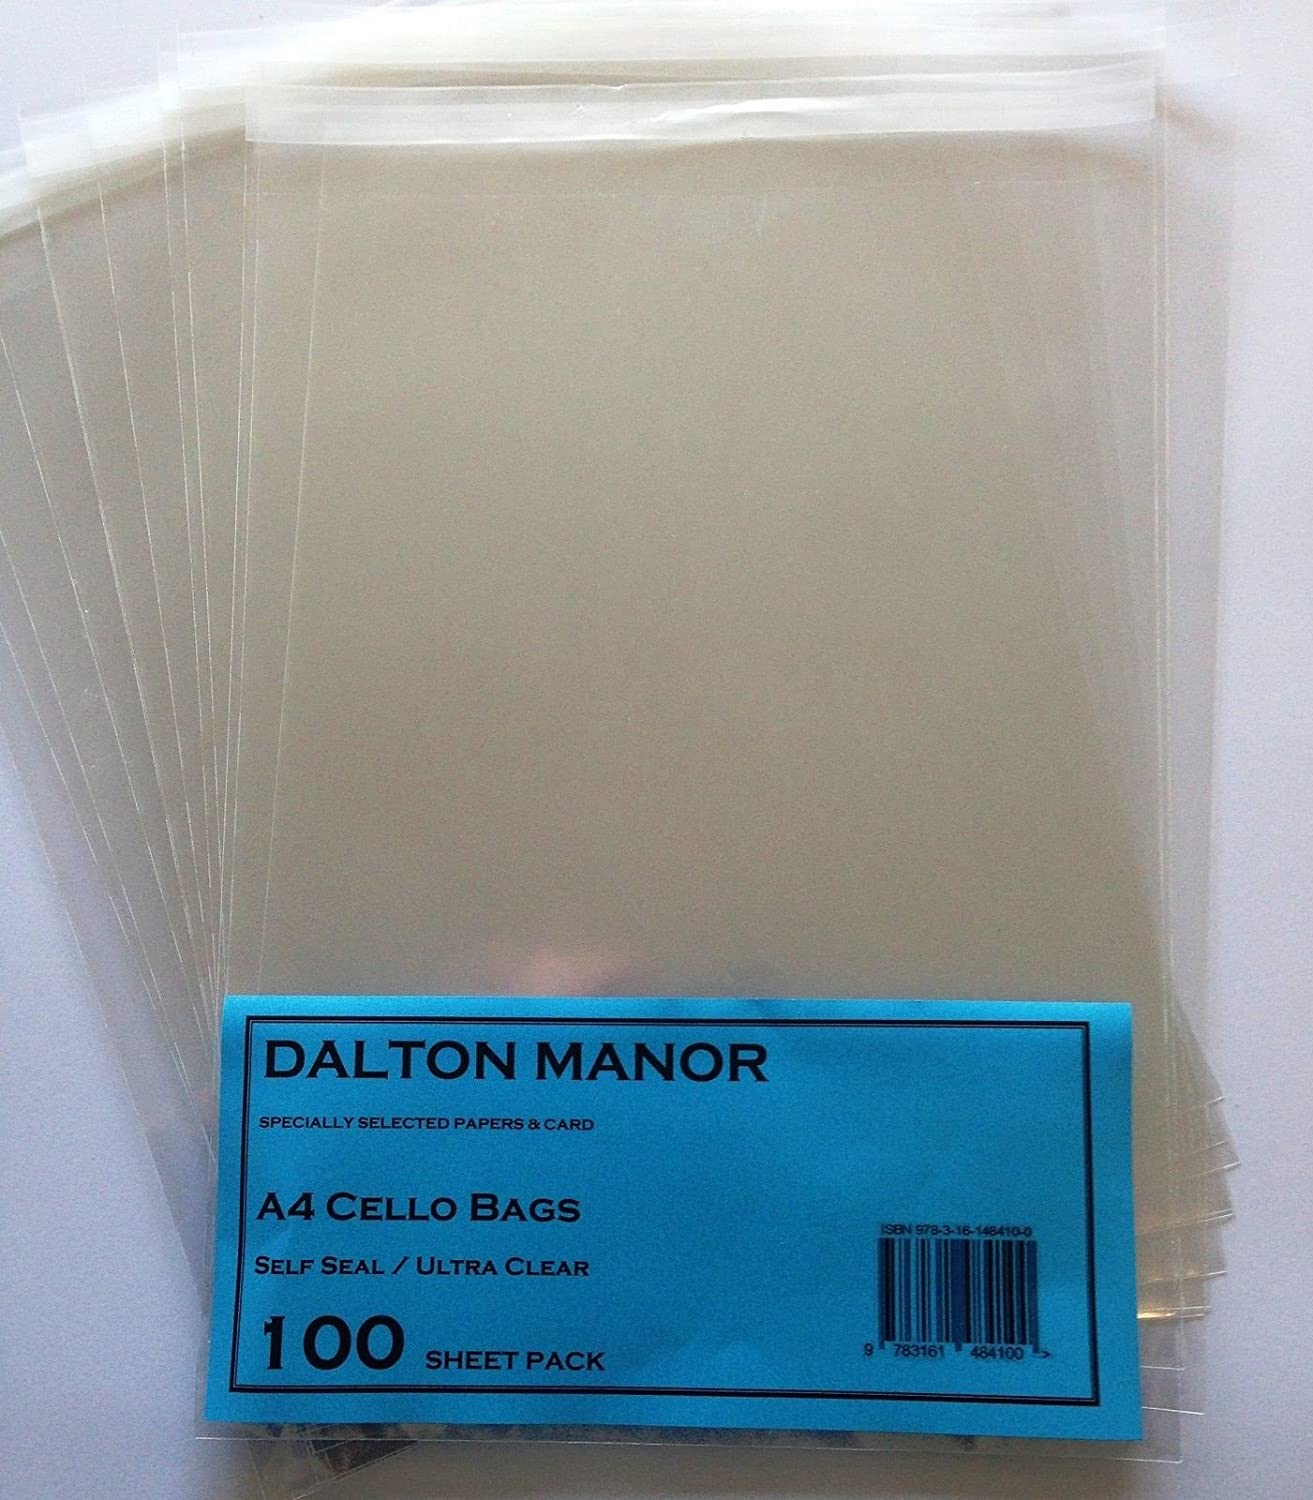 Drawings Cello C5 A5 Clear Cellophane Display Bags For Print Self Seal 500